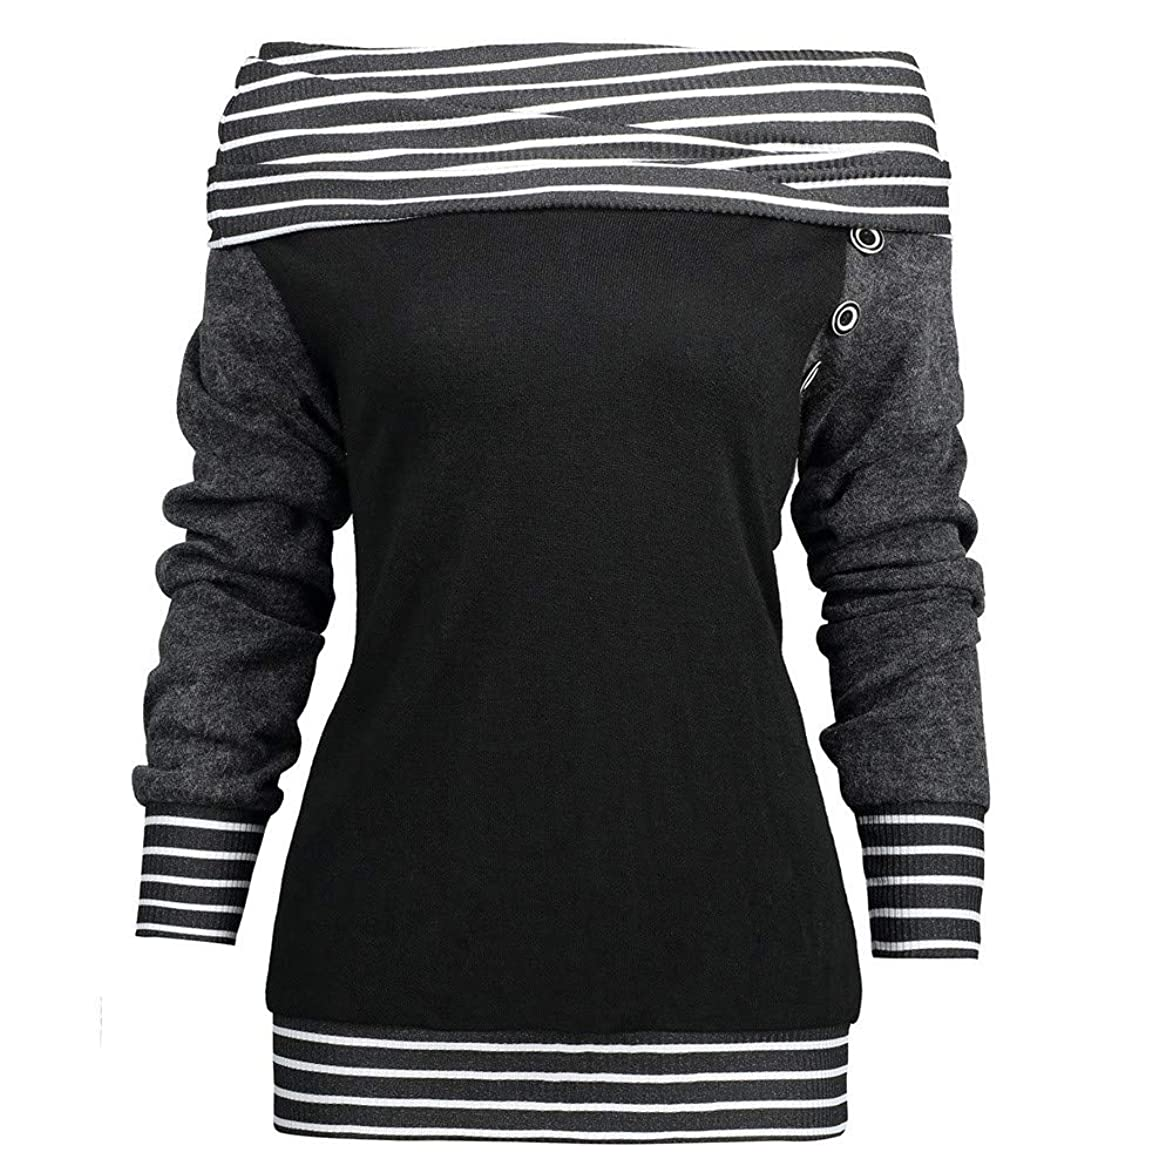 GOVOW Button Sweatshirt Cardigan for Women Skew Neck Long Sleeve Striped Patchwork Top pys617291066532